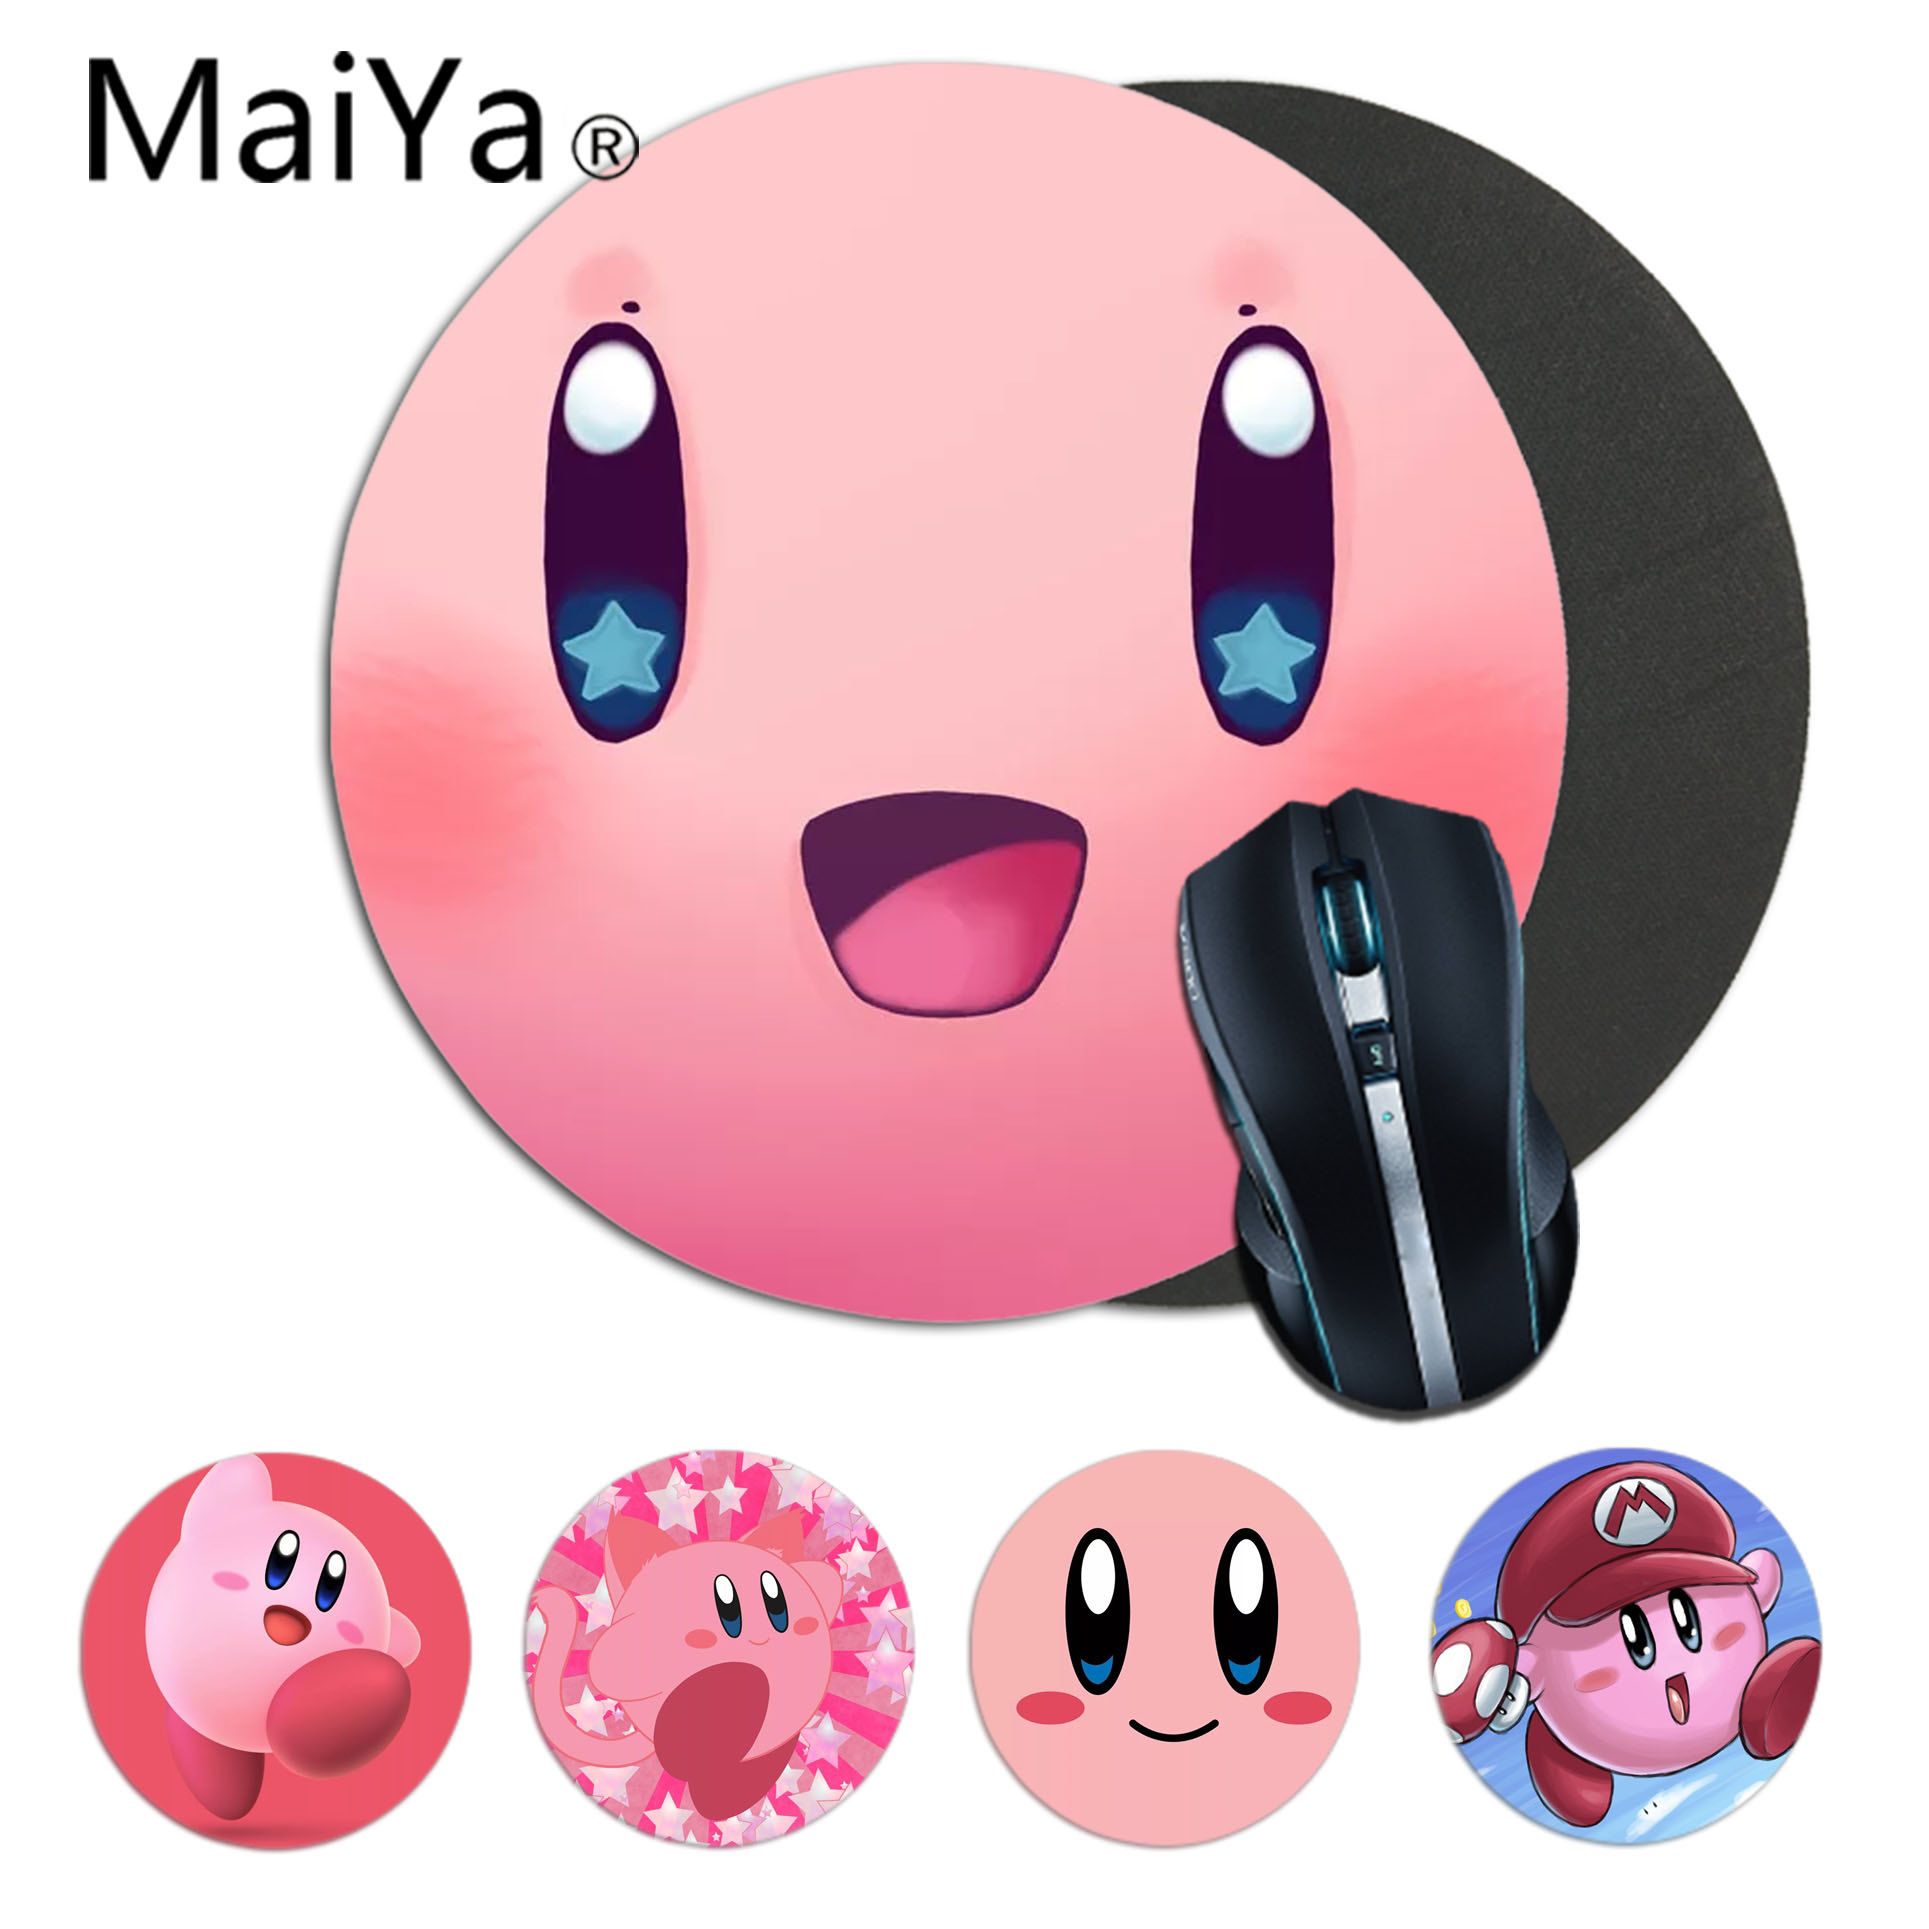 MaiYaCa My Favorite Custom Skin Kirby Gamer Speed Mice Retail Small Rubber Mousepad Gaming Mousepad Rug For PC Laptop Notebook